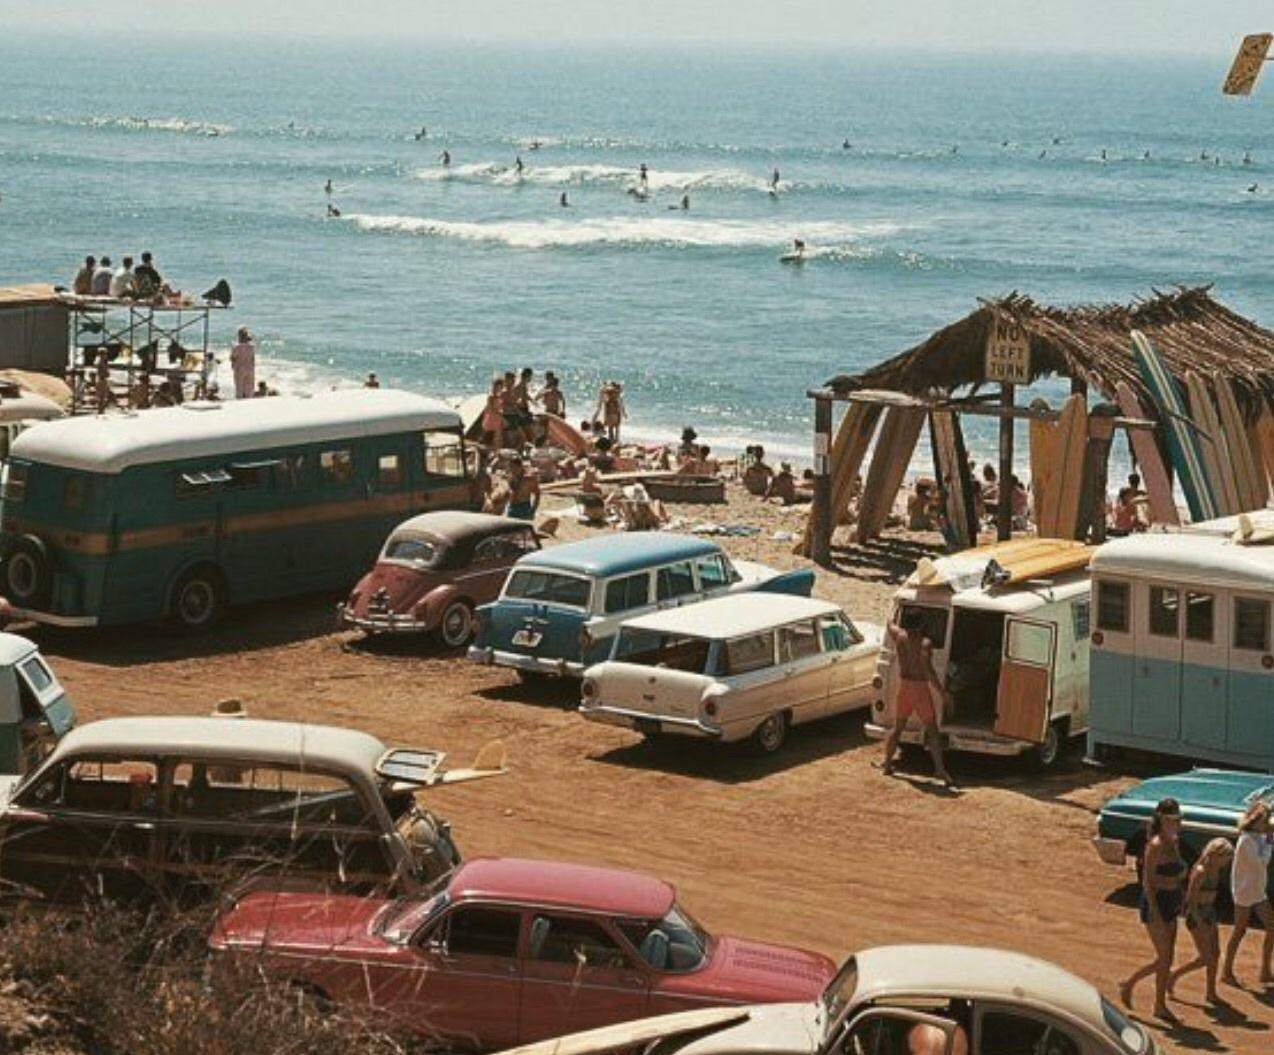 beach, car, family, freedom, friends, hip, hippy, hipster, holiday, retro, sand, seventies, summer, surf, surfboard, vintage, vintage car, waves, west coast, love water, convi